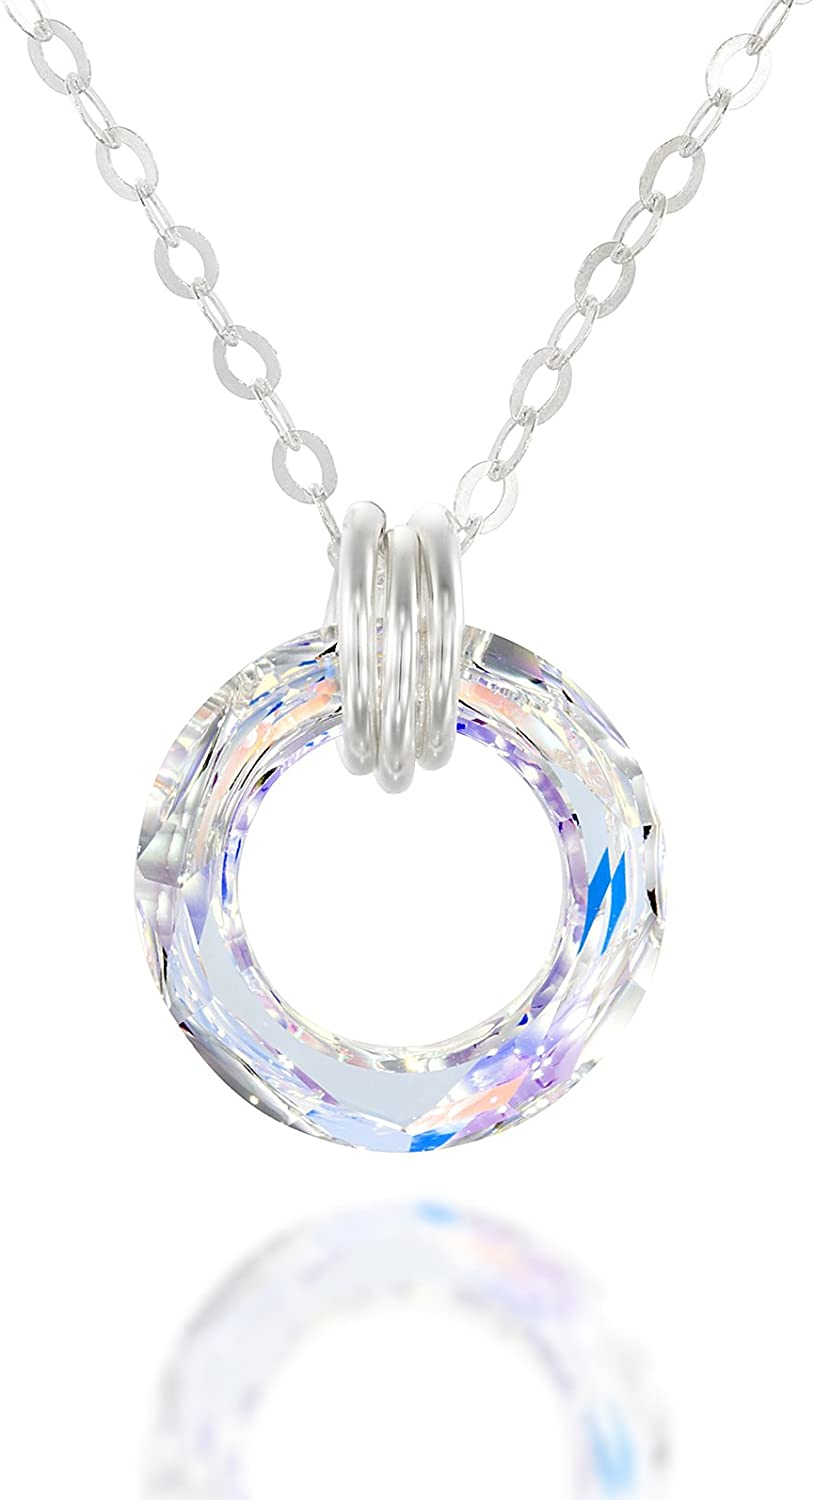 Solid 925 Sterling Silver Multi Color Stellux Crystals Pendant Charm 10mm x 11mm